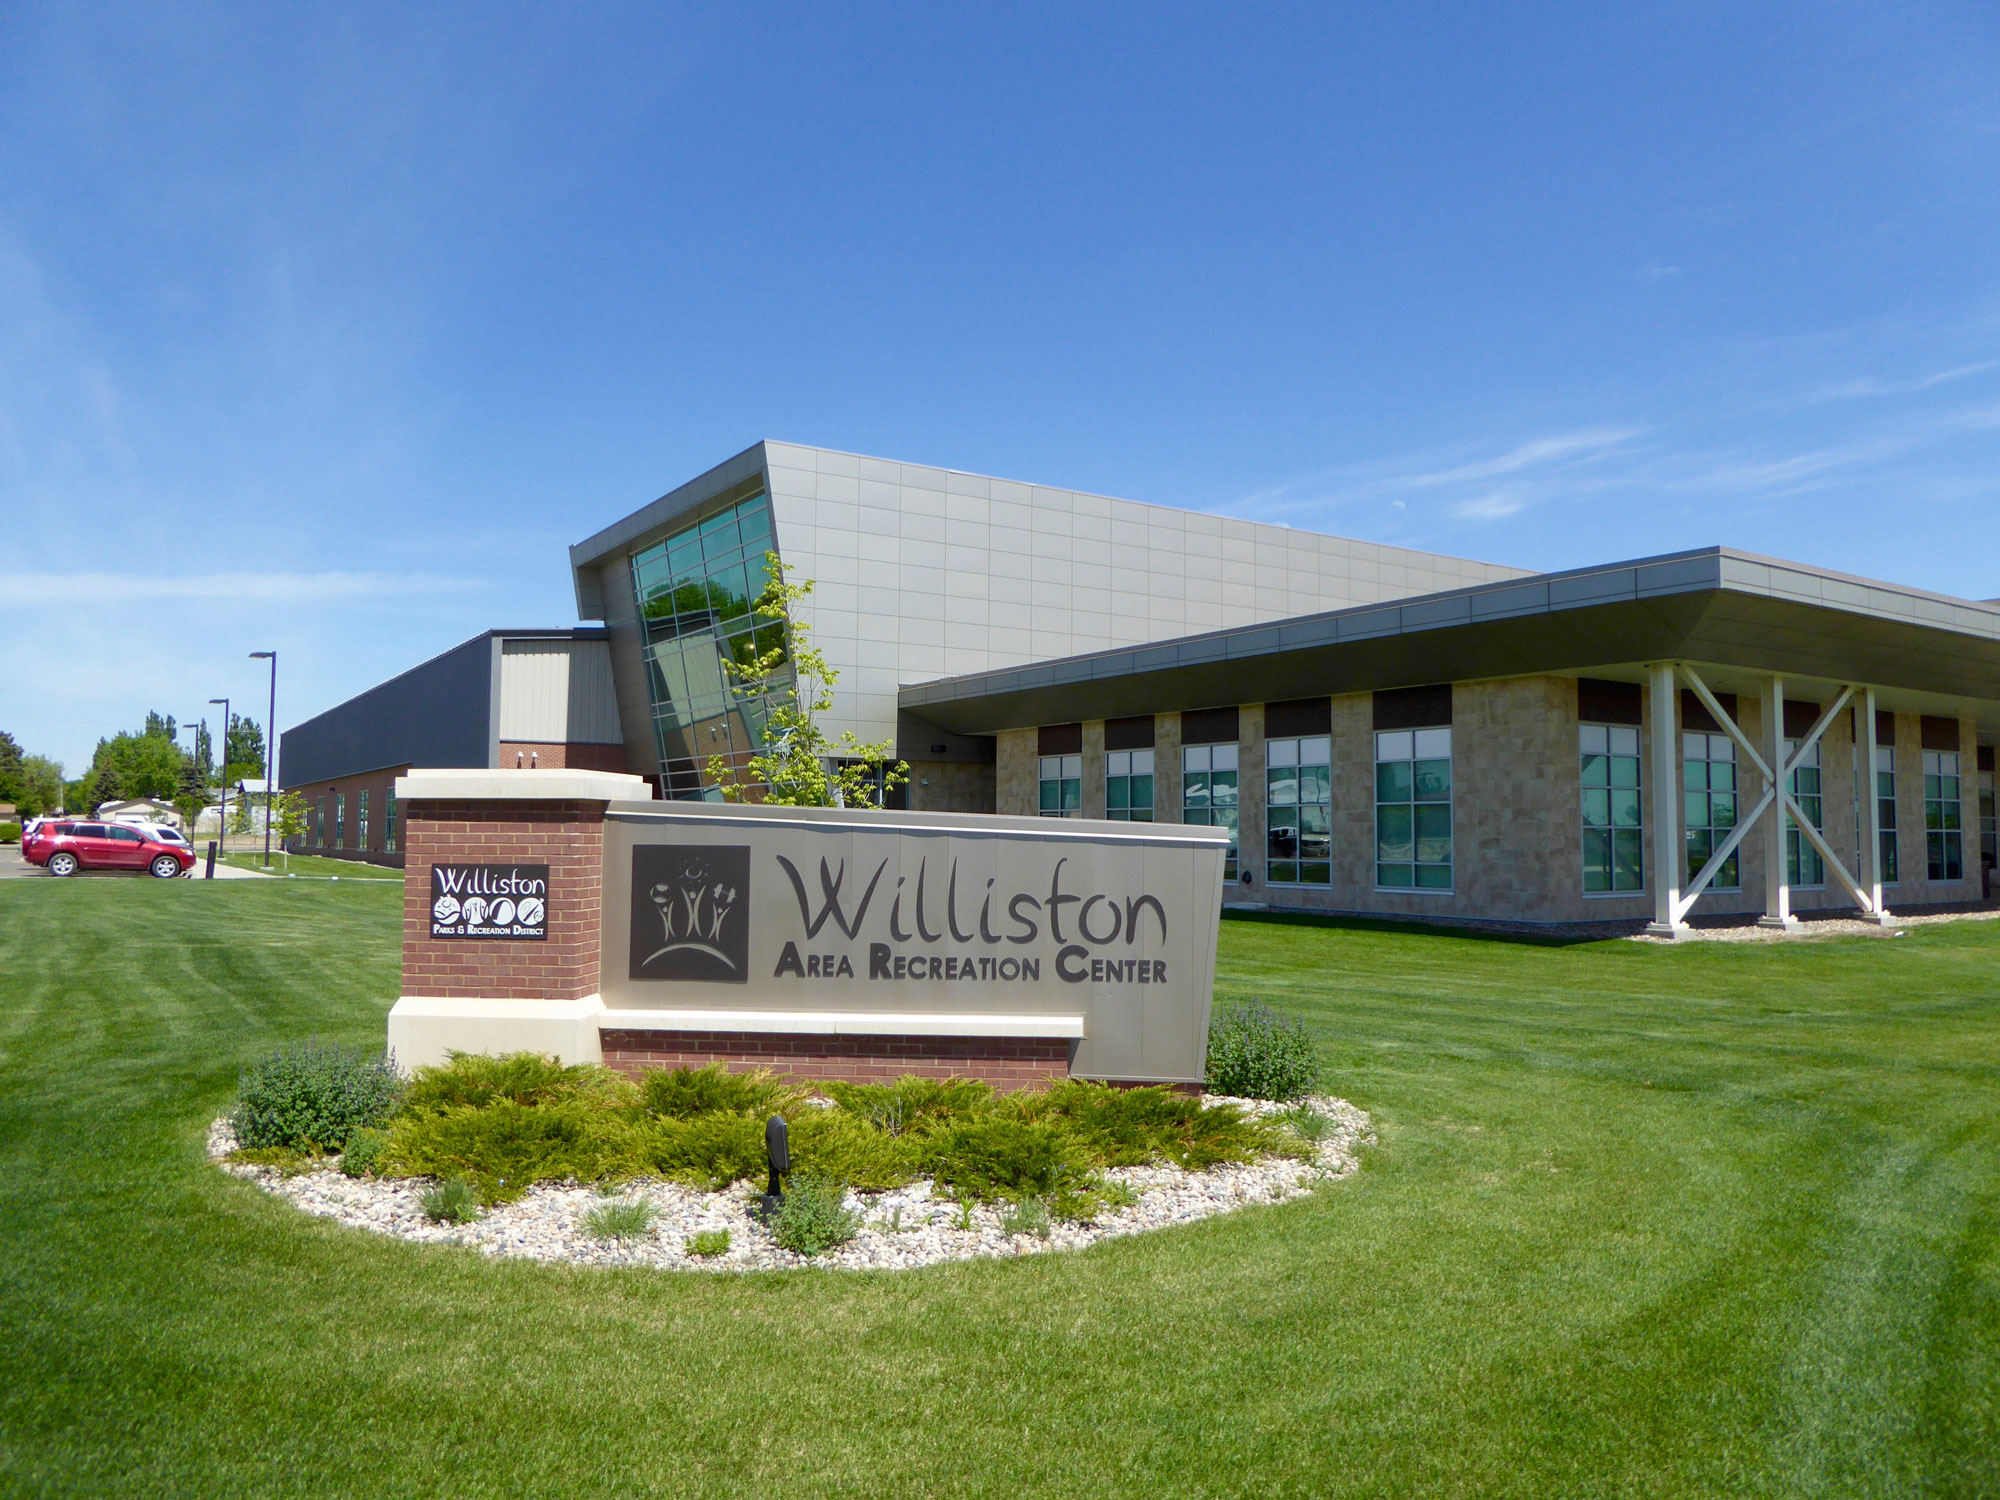 The new Williston Area Recreation Center